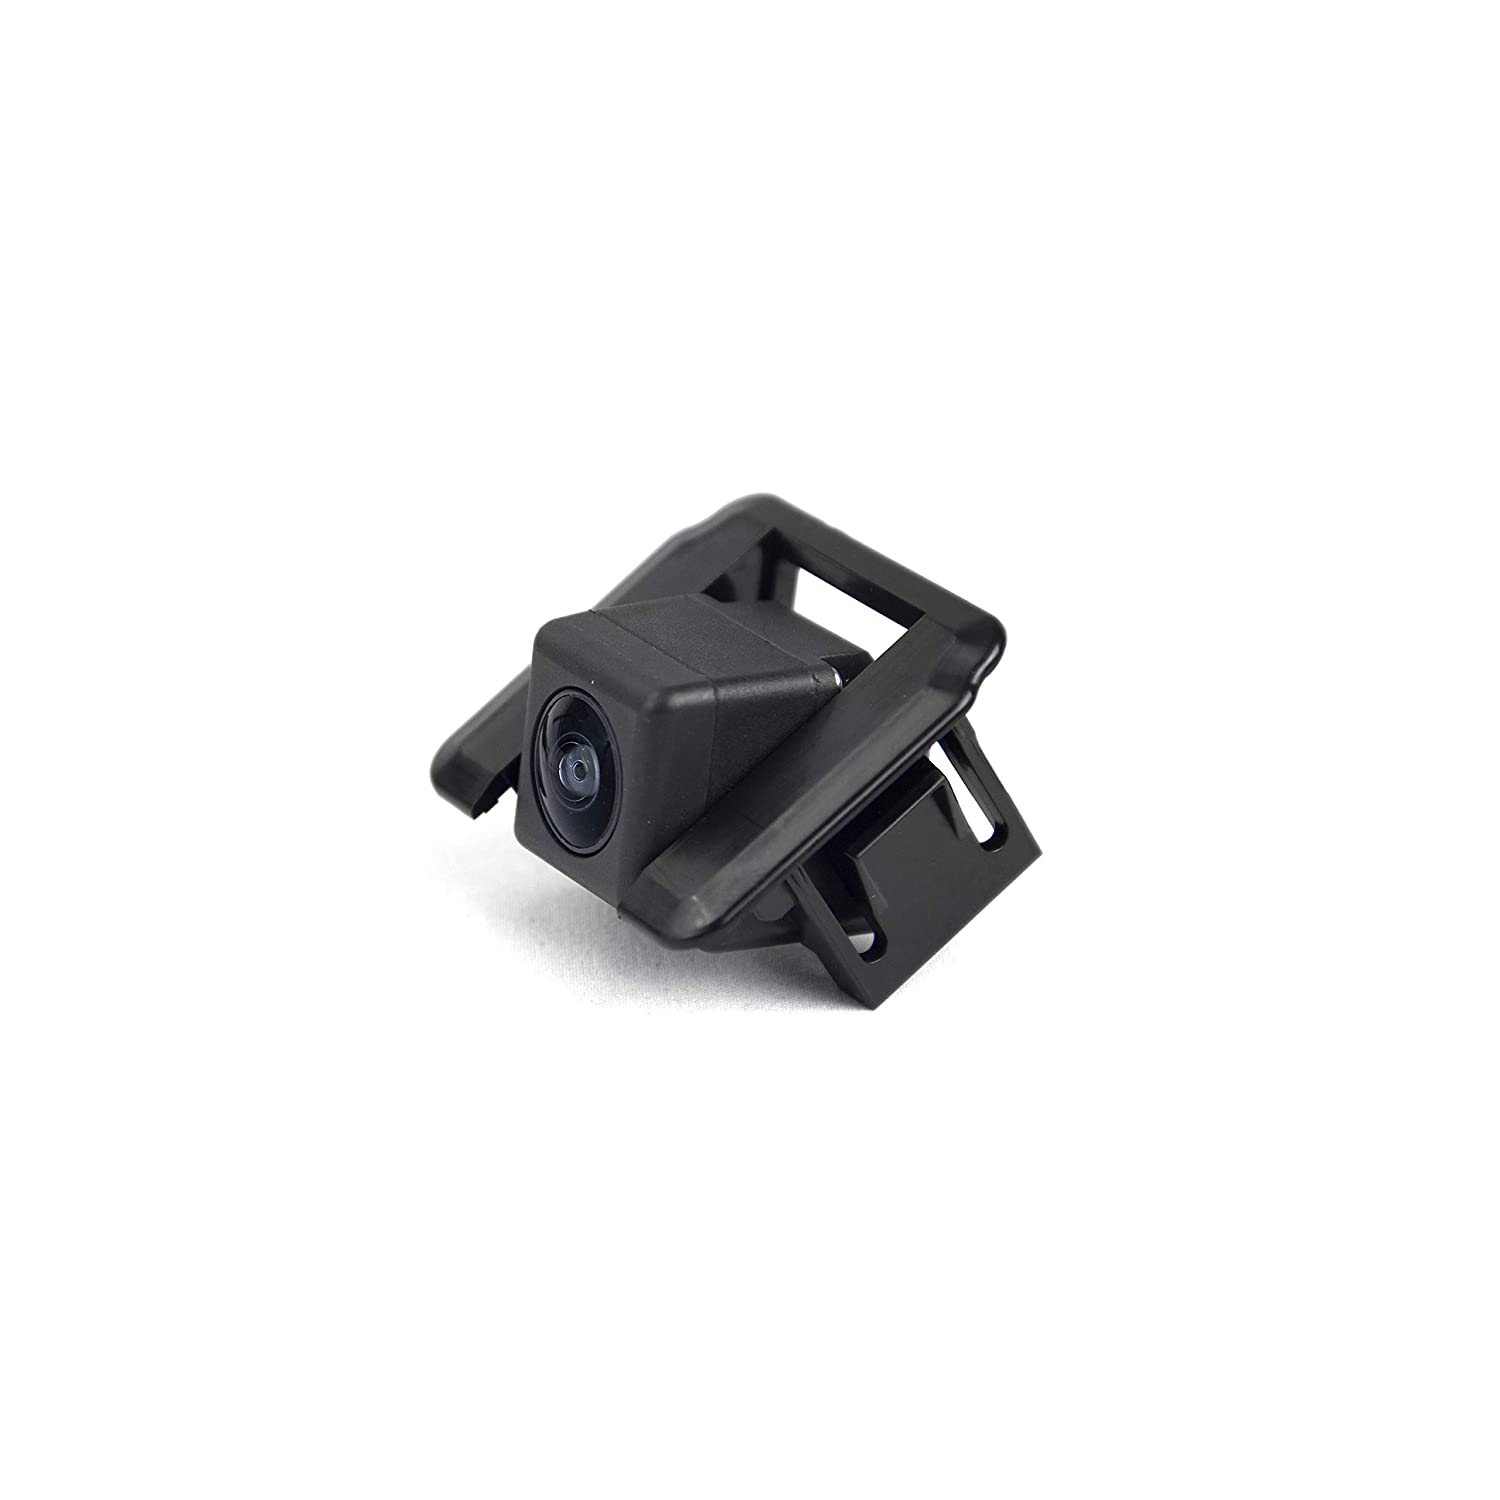 TK48-67-RC0A Master Tailgaters Replacement for Mazda CX-9 Backup Camera 2016-2019 OE Part # TK48-67-RC0B